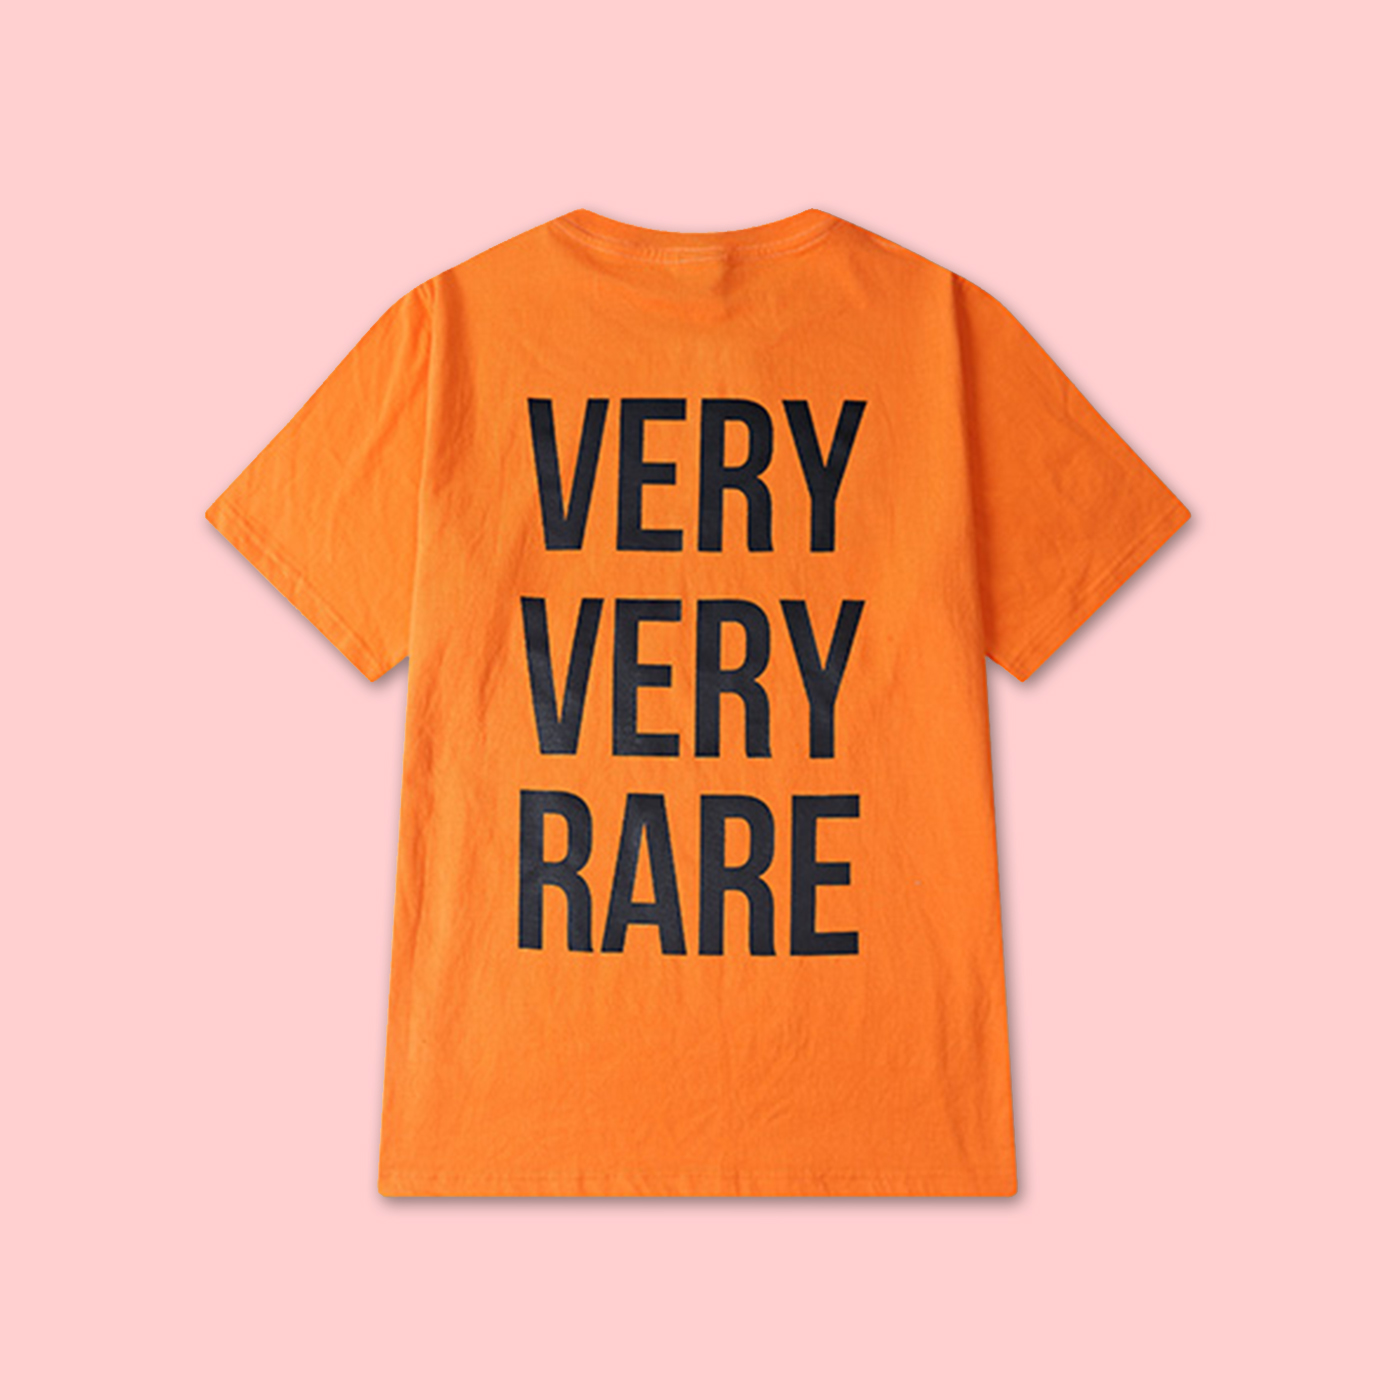 38d225b64 STREETGOTH VERY VERY RARE T SHIRT IN ORANGE on Storenvy